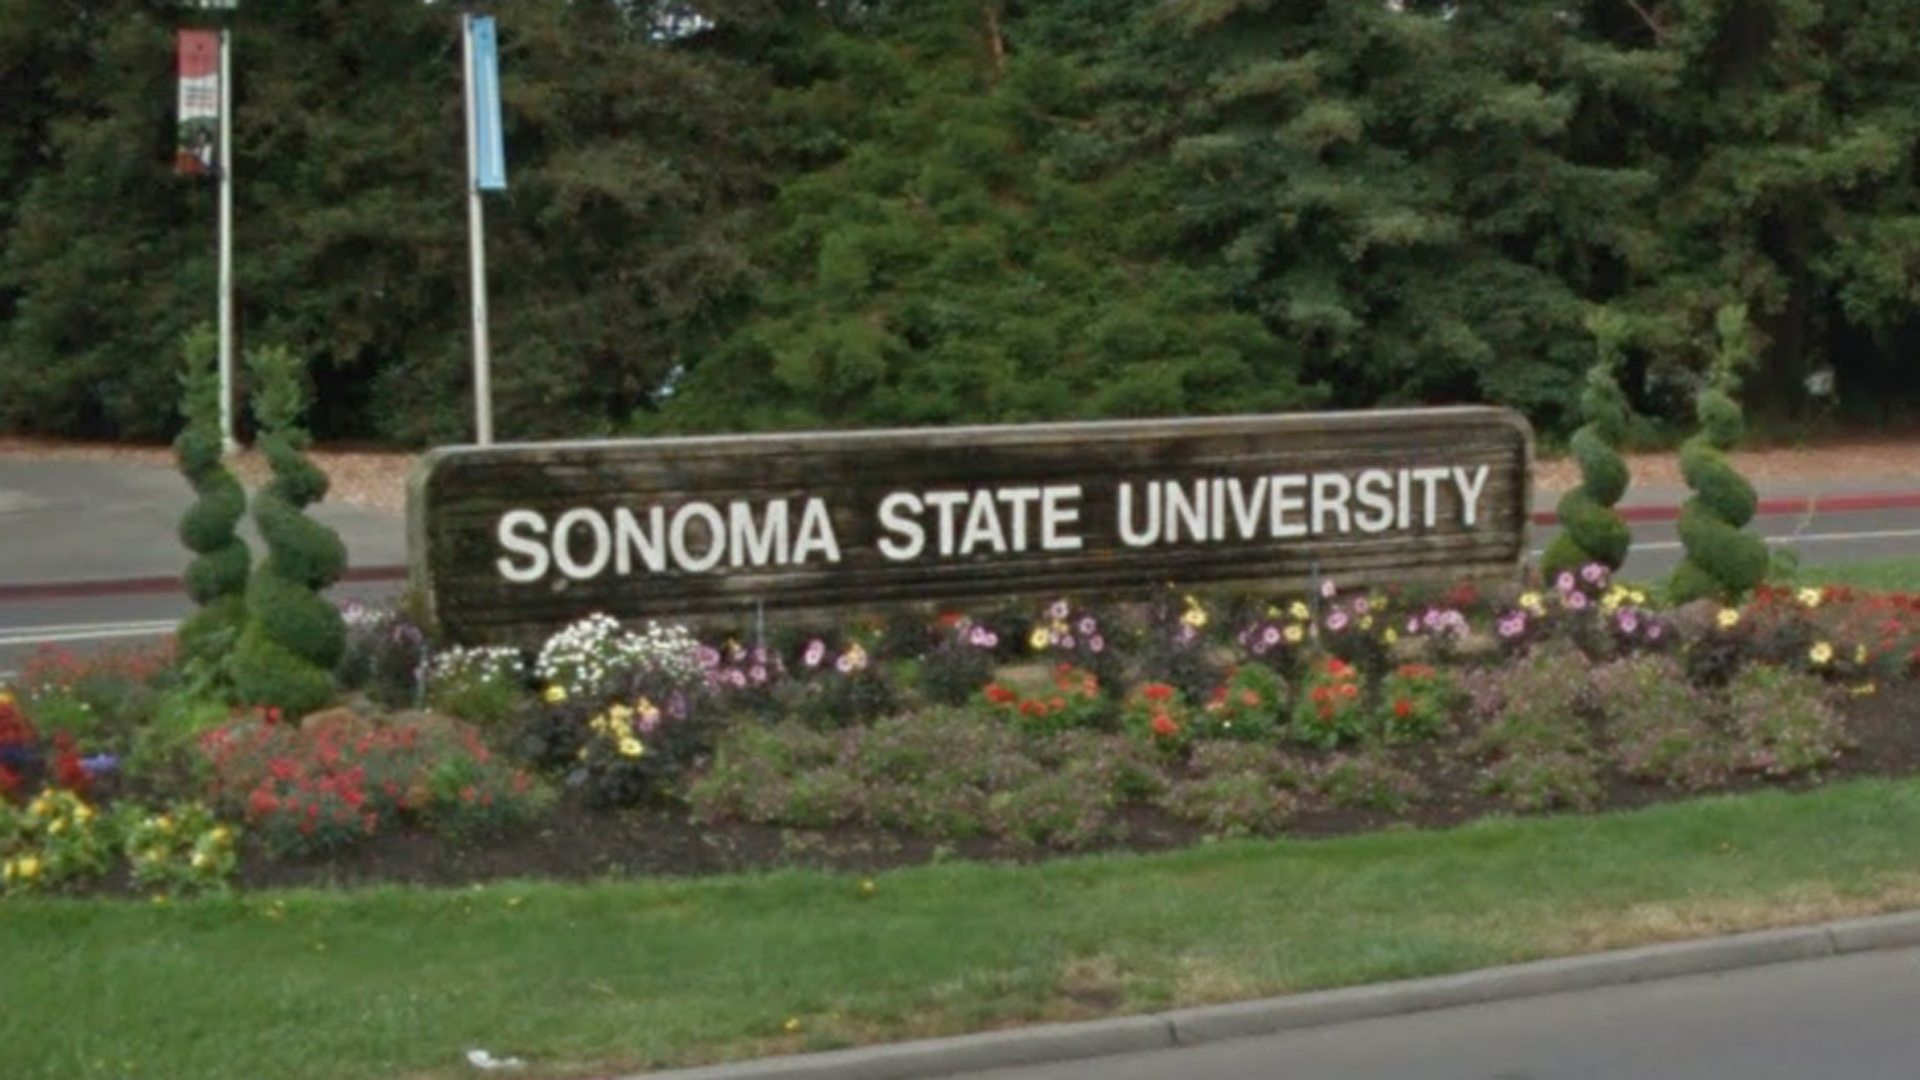 A Sonoma State University sign is seen in this Google Maps image.